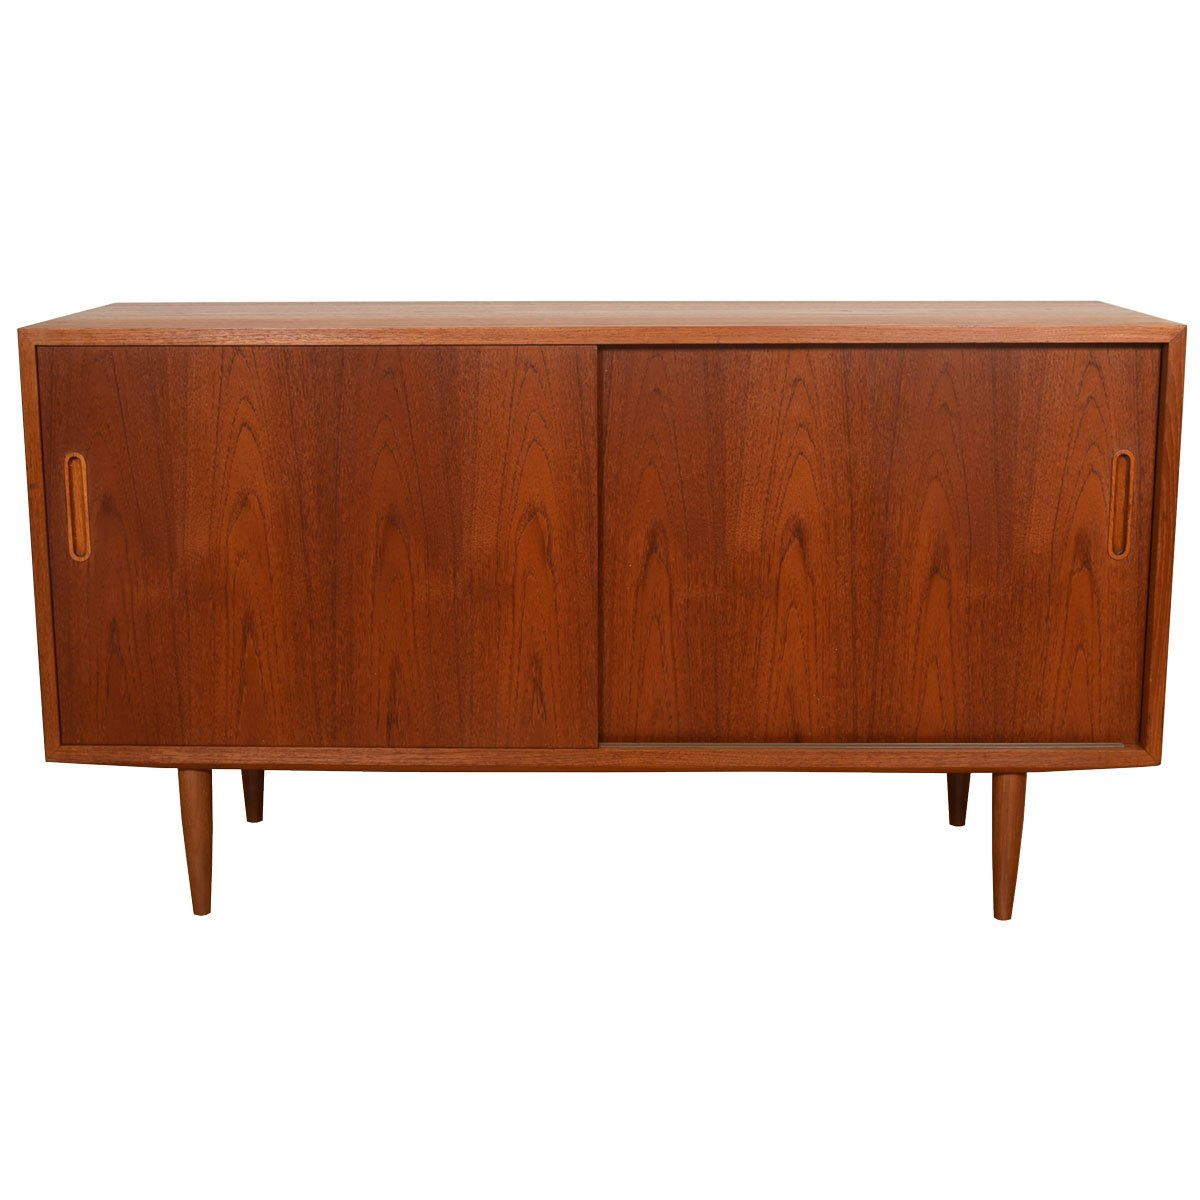 Danish Modern Teak Sliding Door Media Cabinet / Sideboard